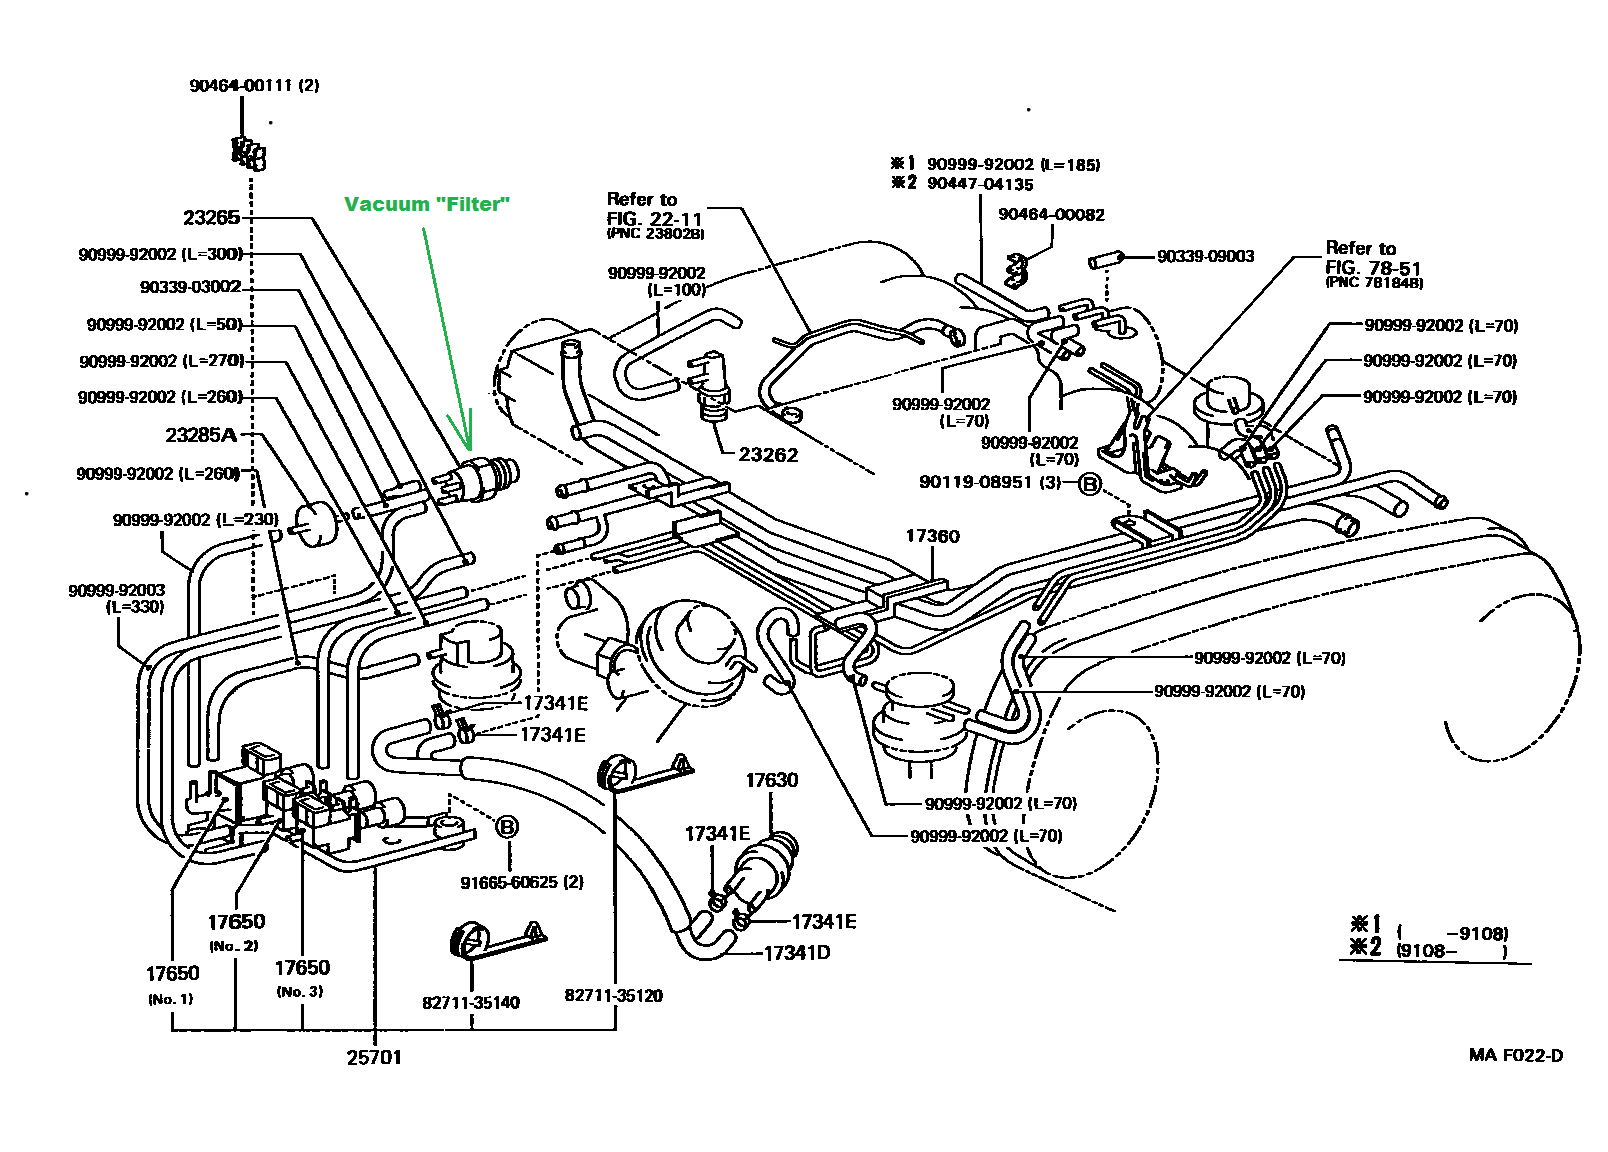 1994 toyota pickup 3 0 vacuum hose diagram car pictures 12 101992 toyota 3400 engine vacuum hose diagram 16 5 artatec rh 16 5 artatec automobile de 94 4runner fuel pump parts diagram toyota corolla engine diagram